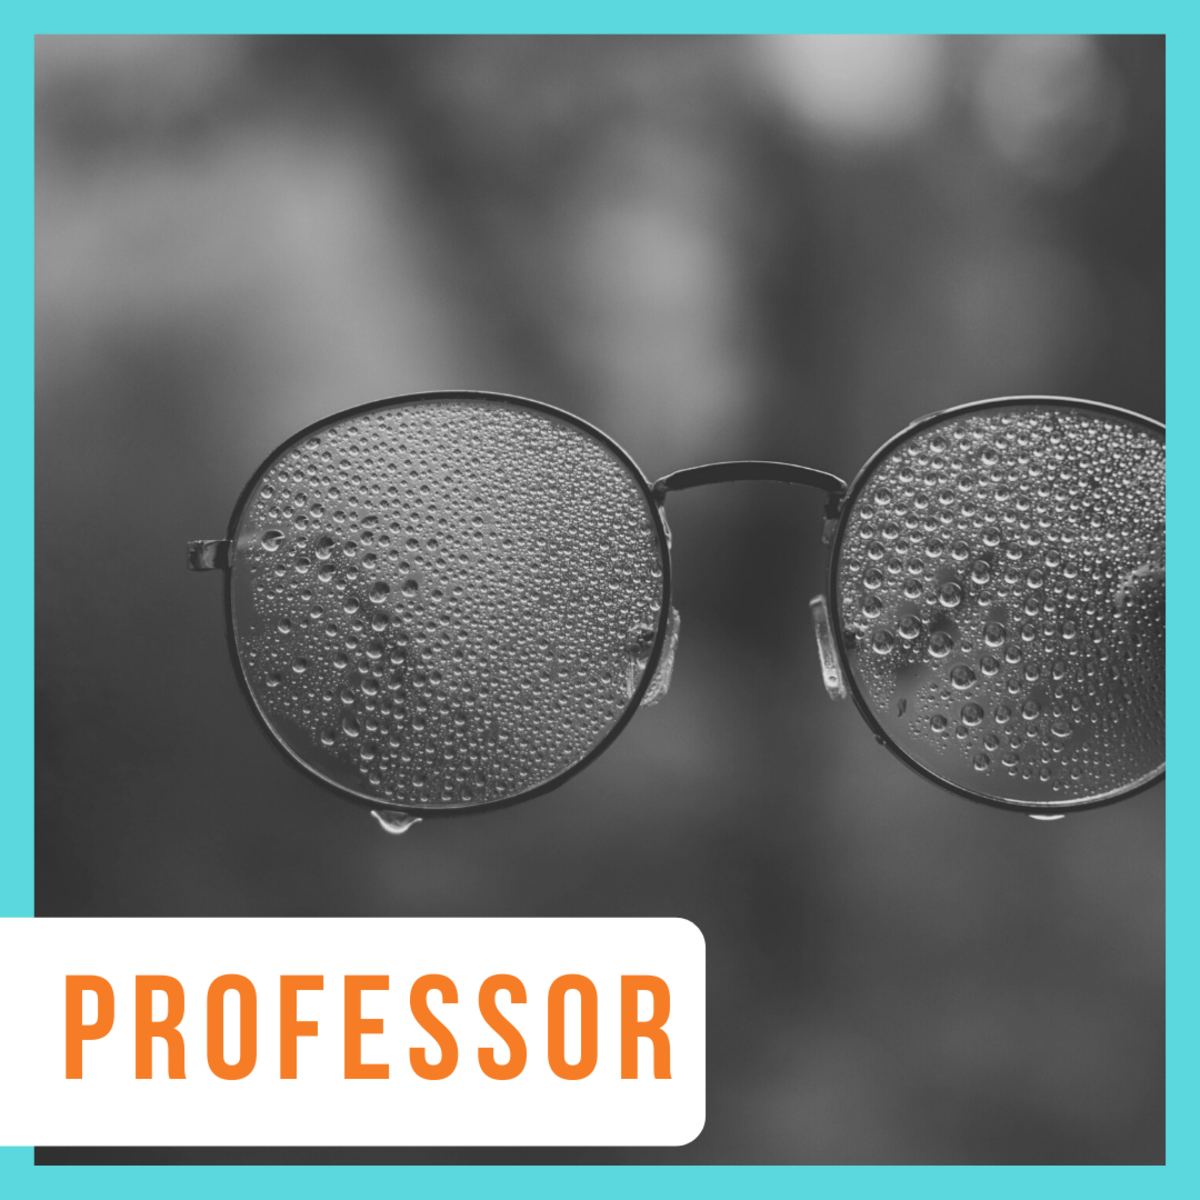 Professor Sexy or Professor Hot Stuff? The options are endless...